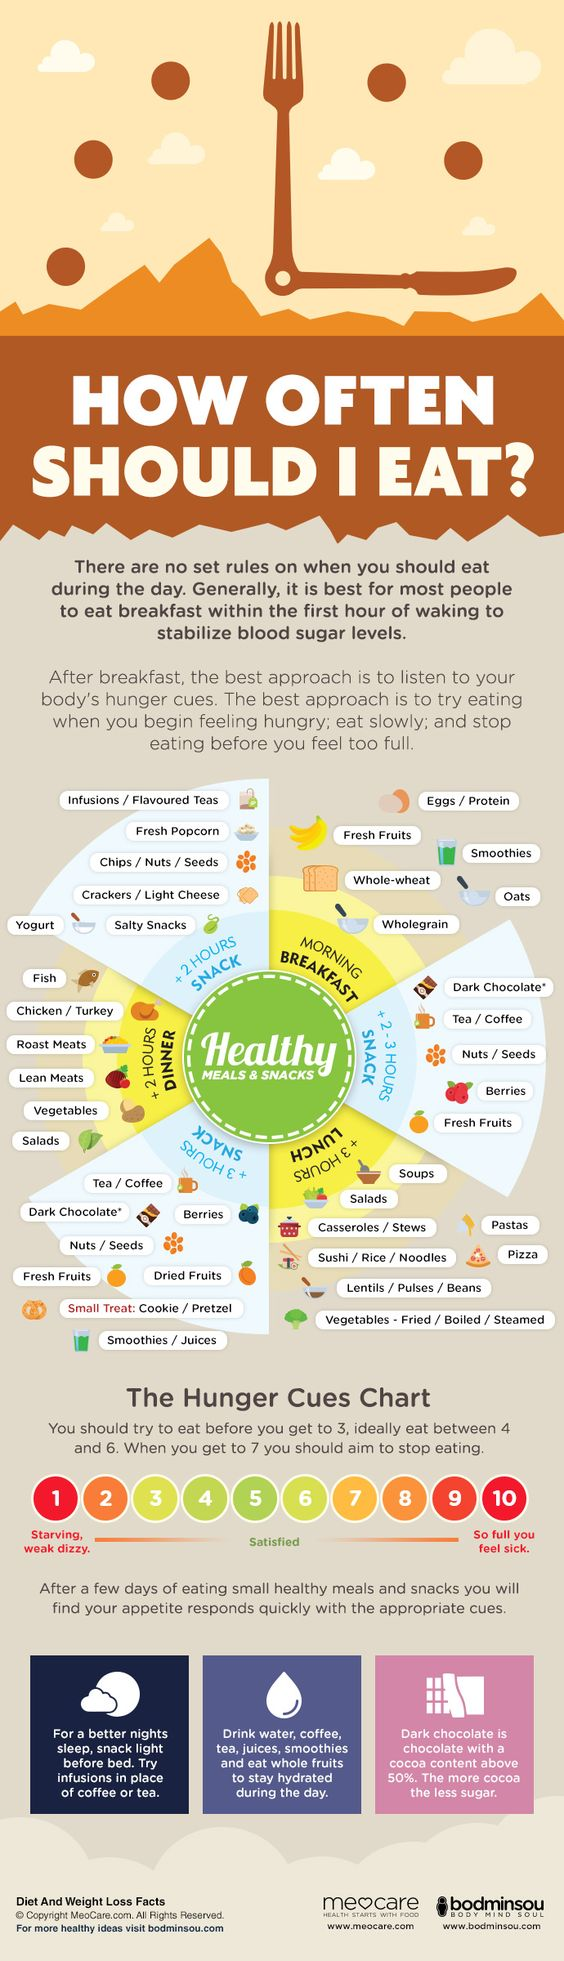 There is a lot of misinformation when it comes to meal frequency. Our infographic below has some meal examples and frequency of eating times. These are suggestions and not written in stone. Let your body be your best guide and base your eating habits around sensible times.: